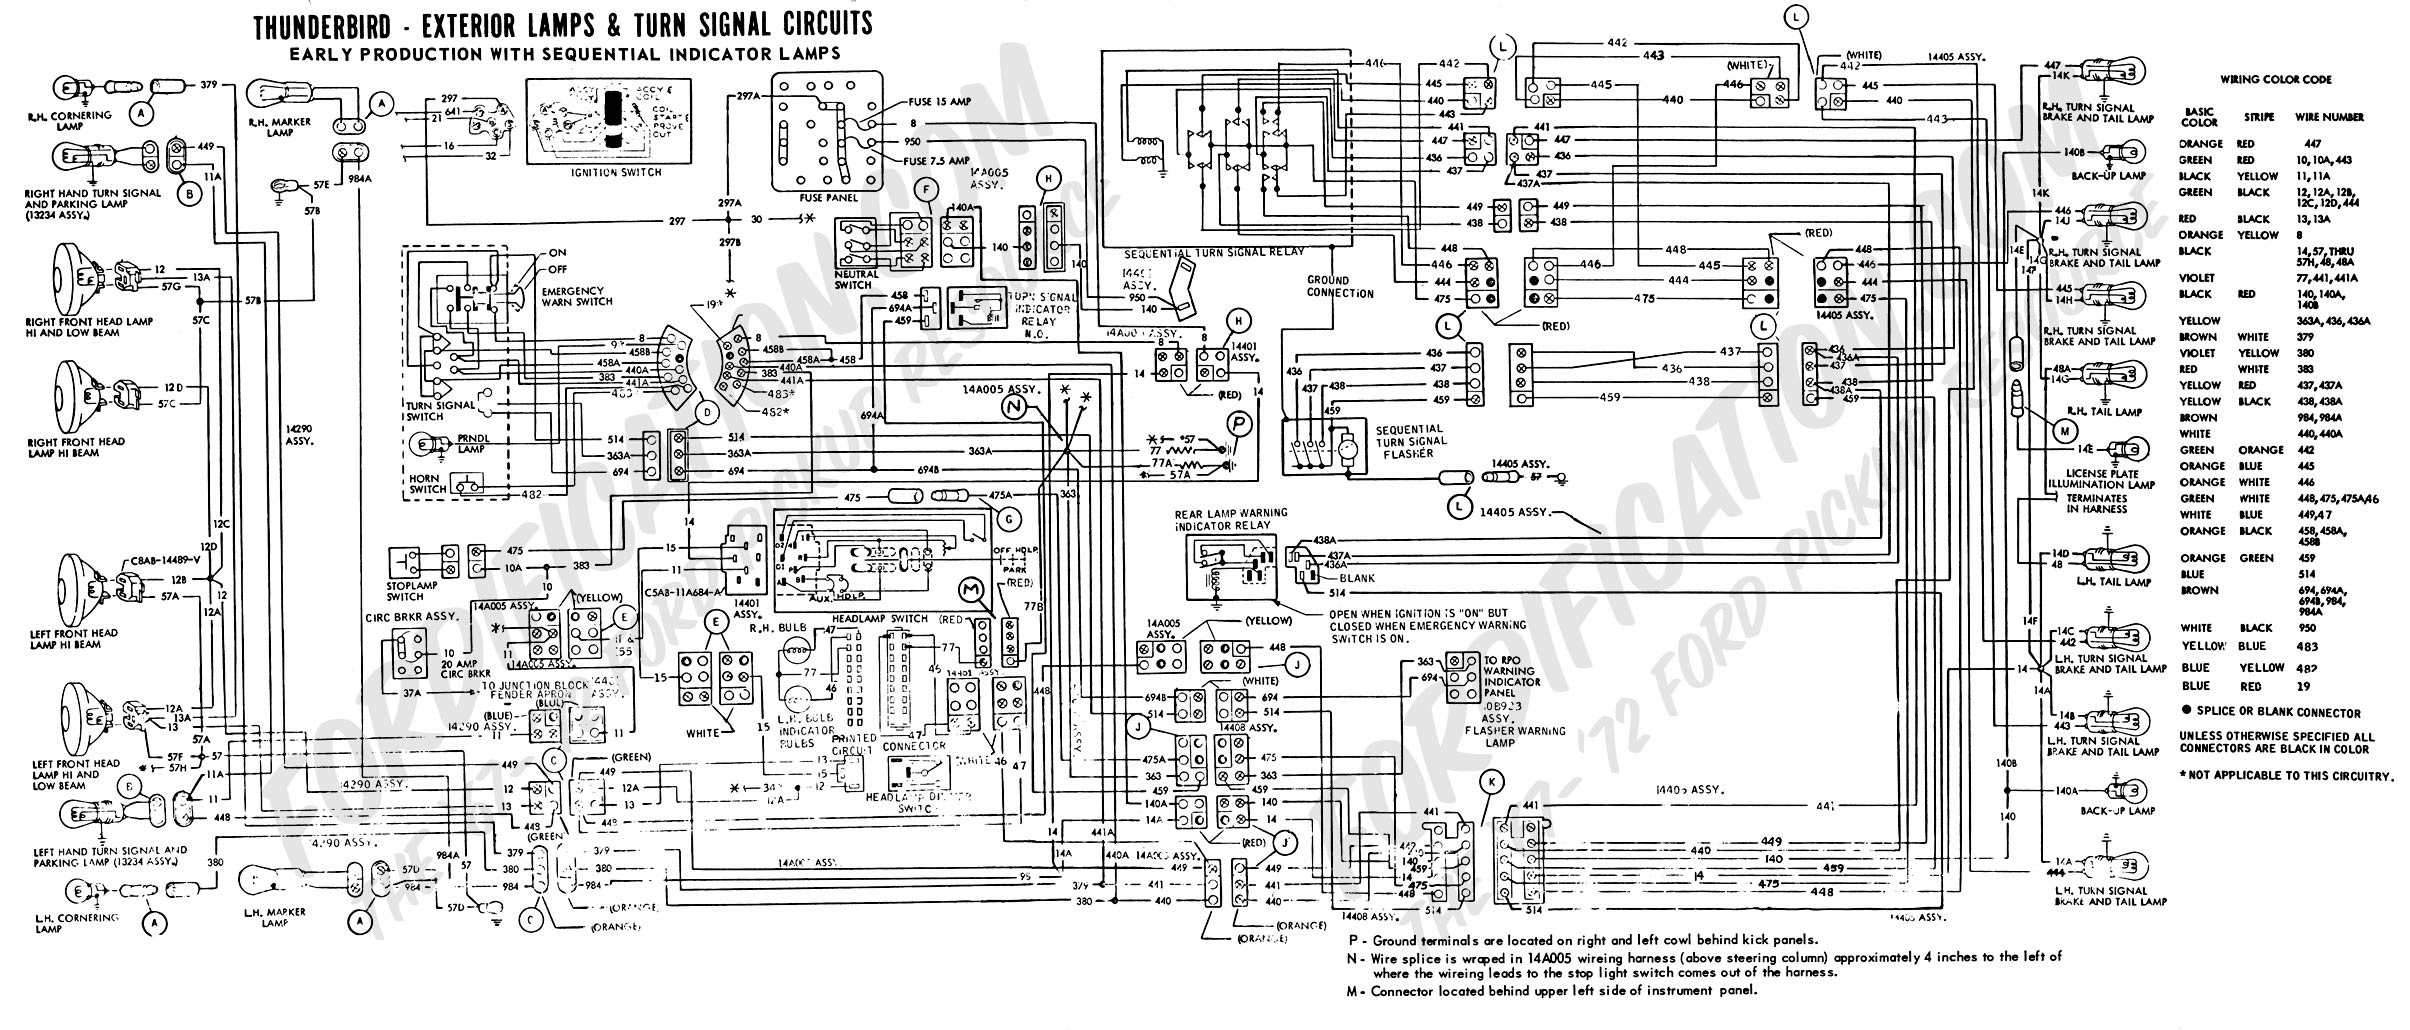 S on 1966 ford thunderbird power window wiring diagram